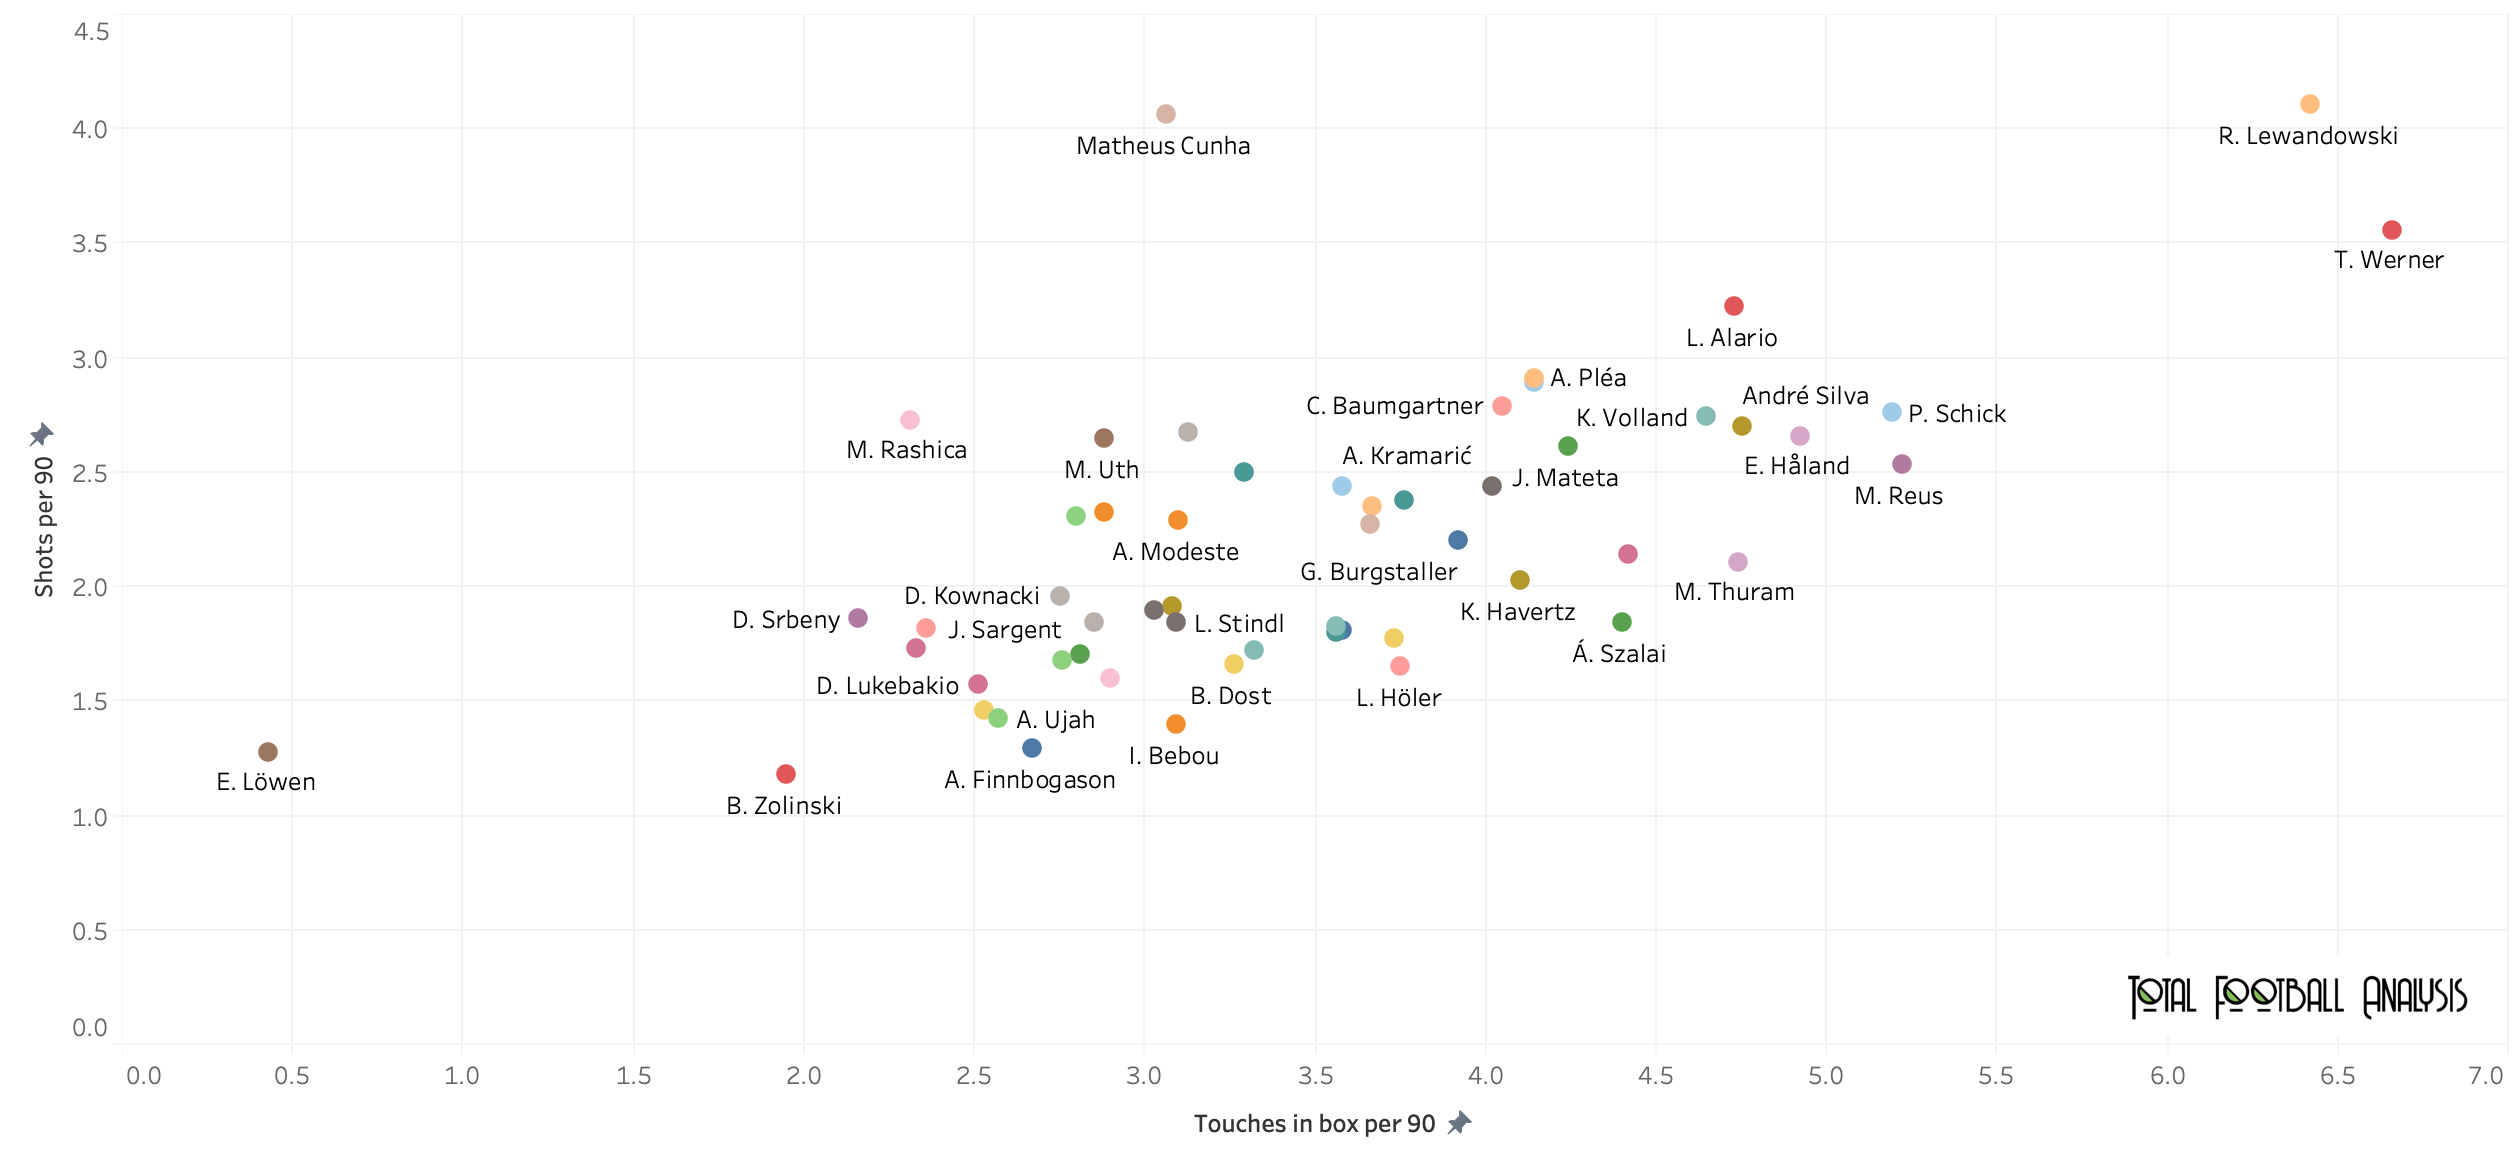 Finding the best strikers in the Bundesliga - data analysis statistics